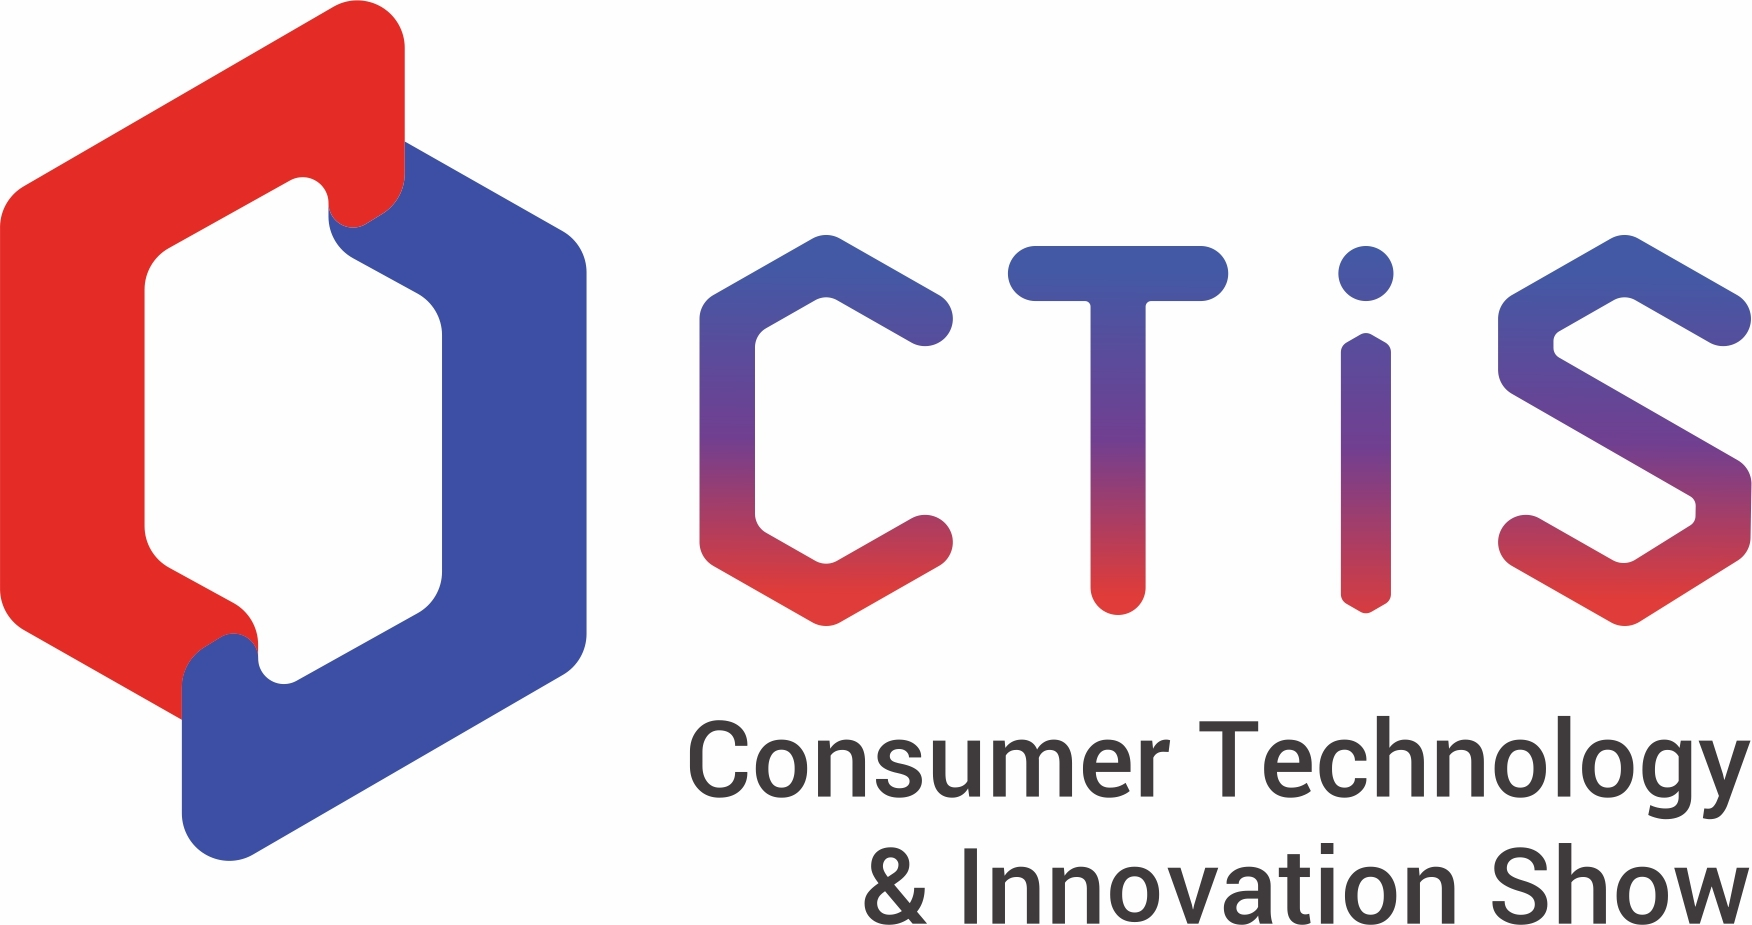 June9-11,2021ConsumerTechnology&InnovationShowExhibition